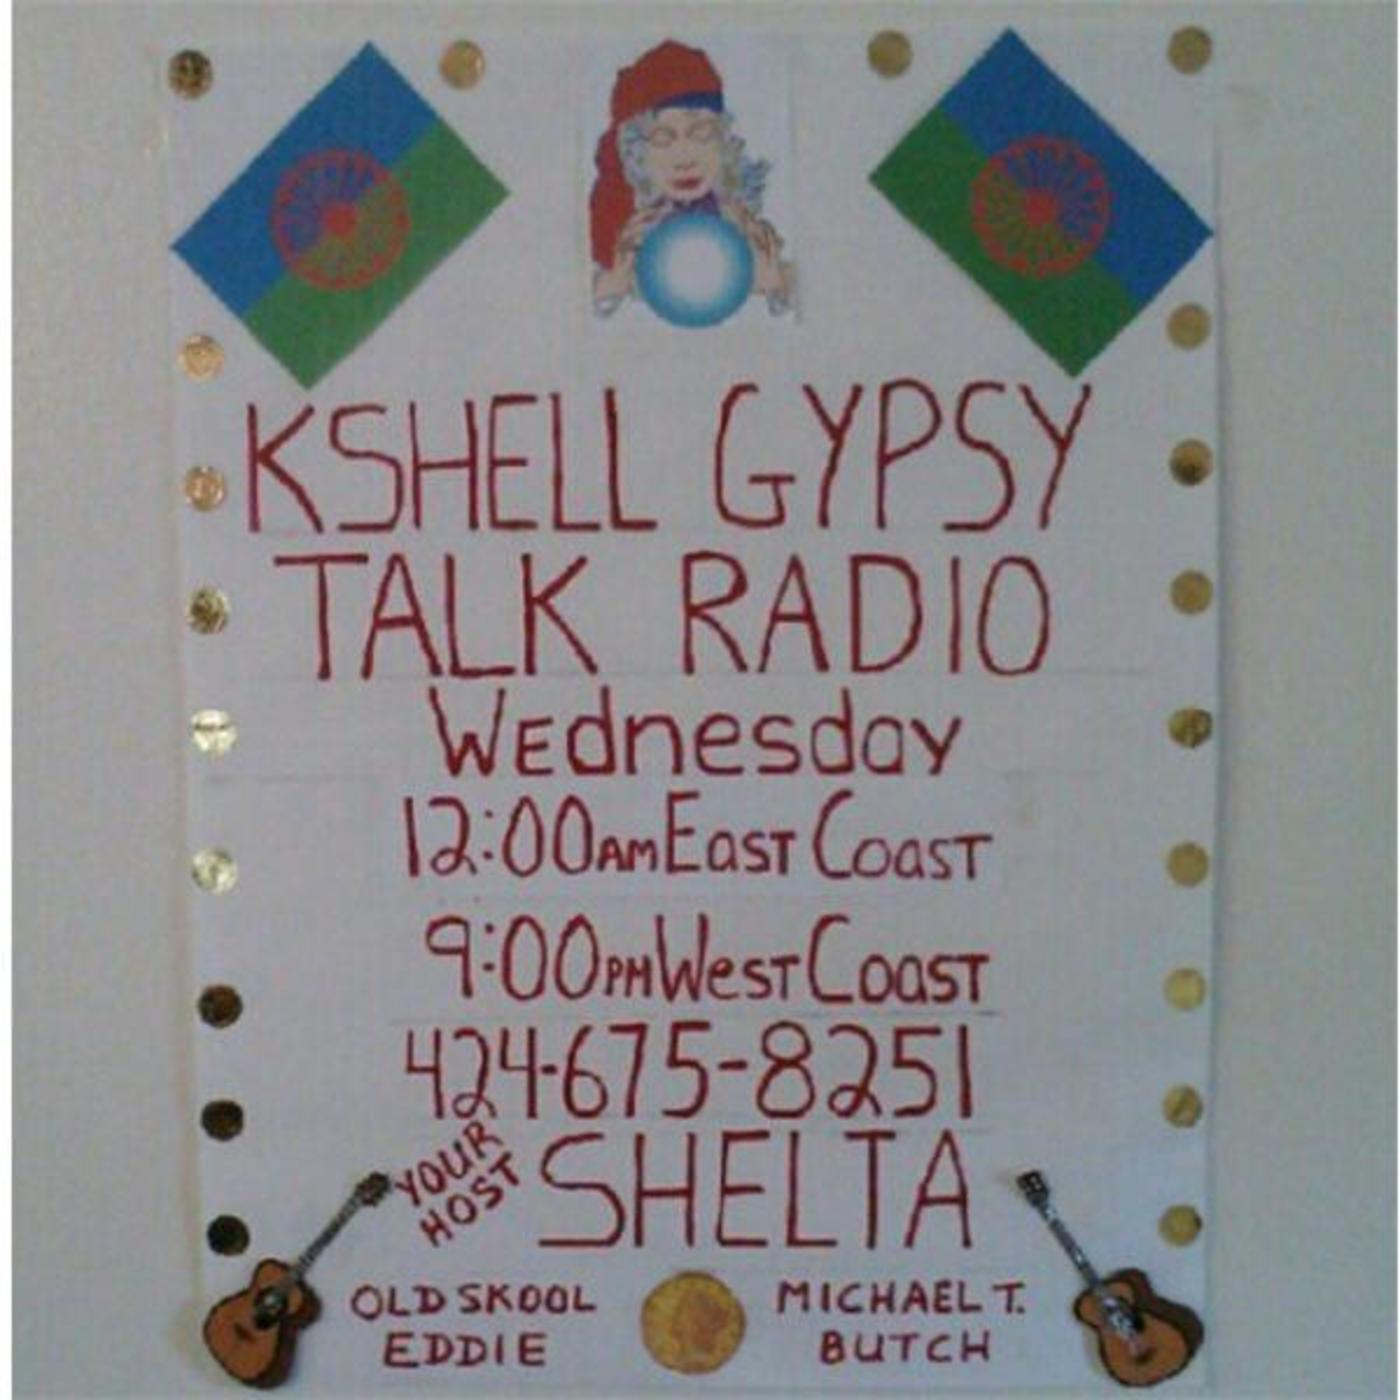 Kshell Gypsy Talk